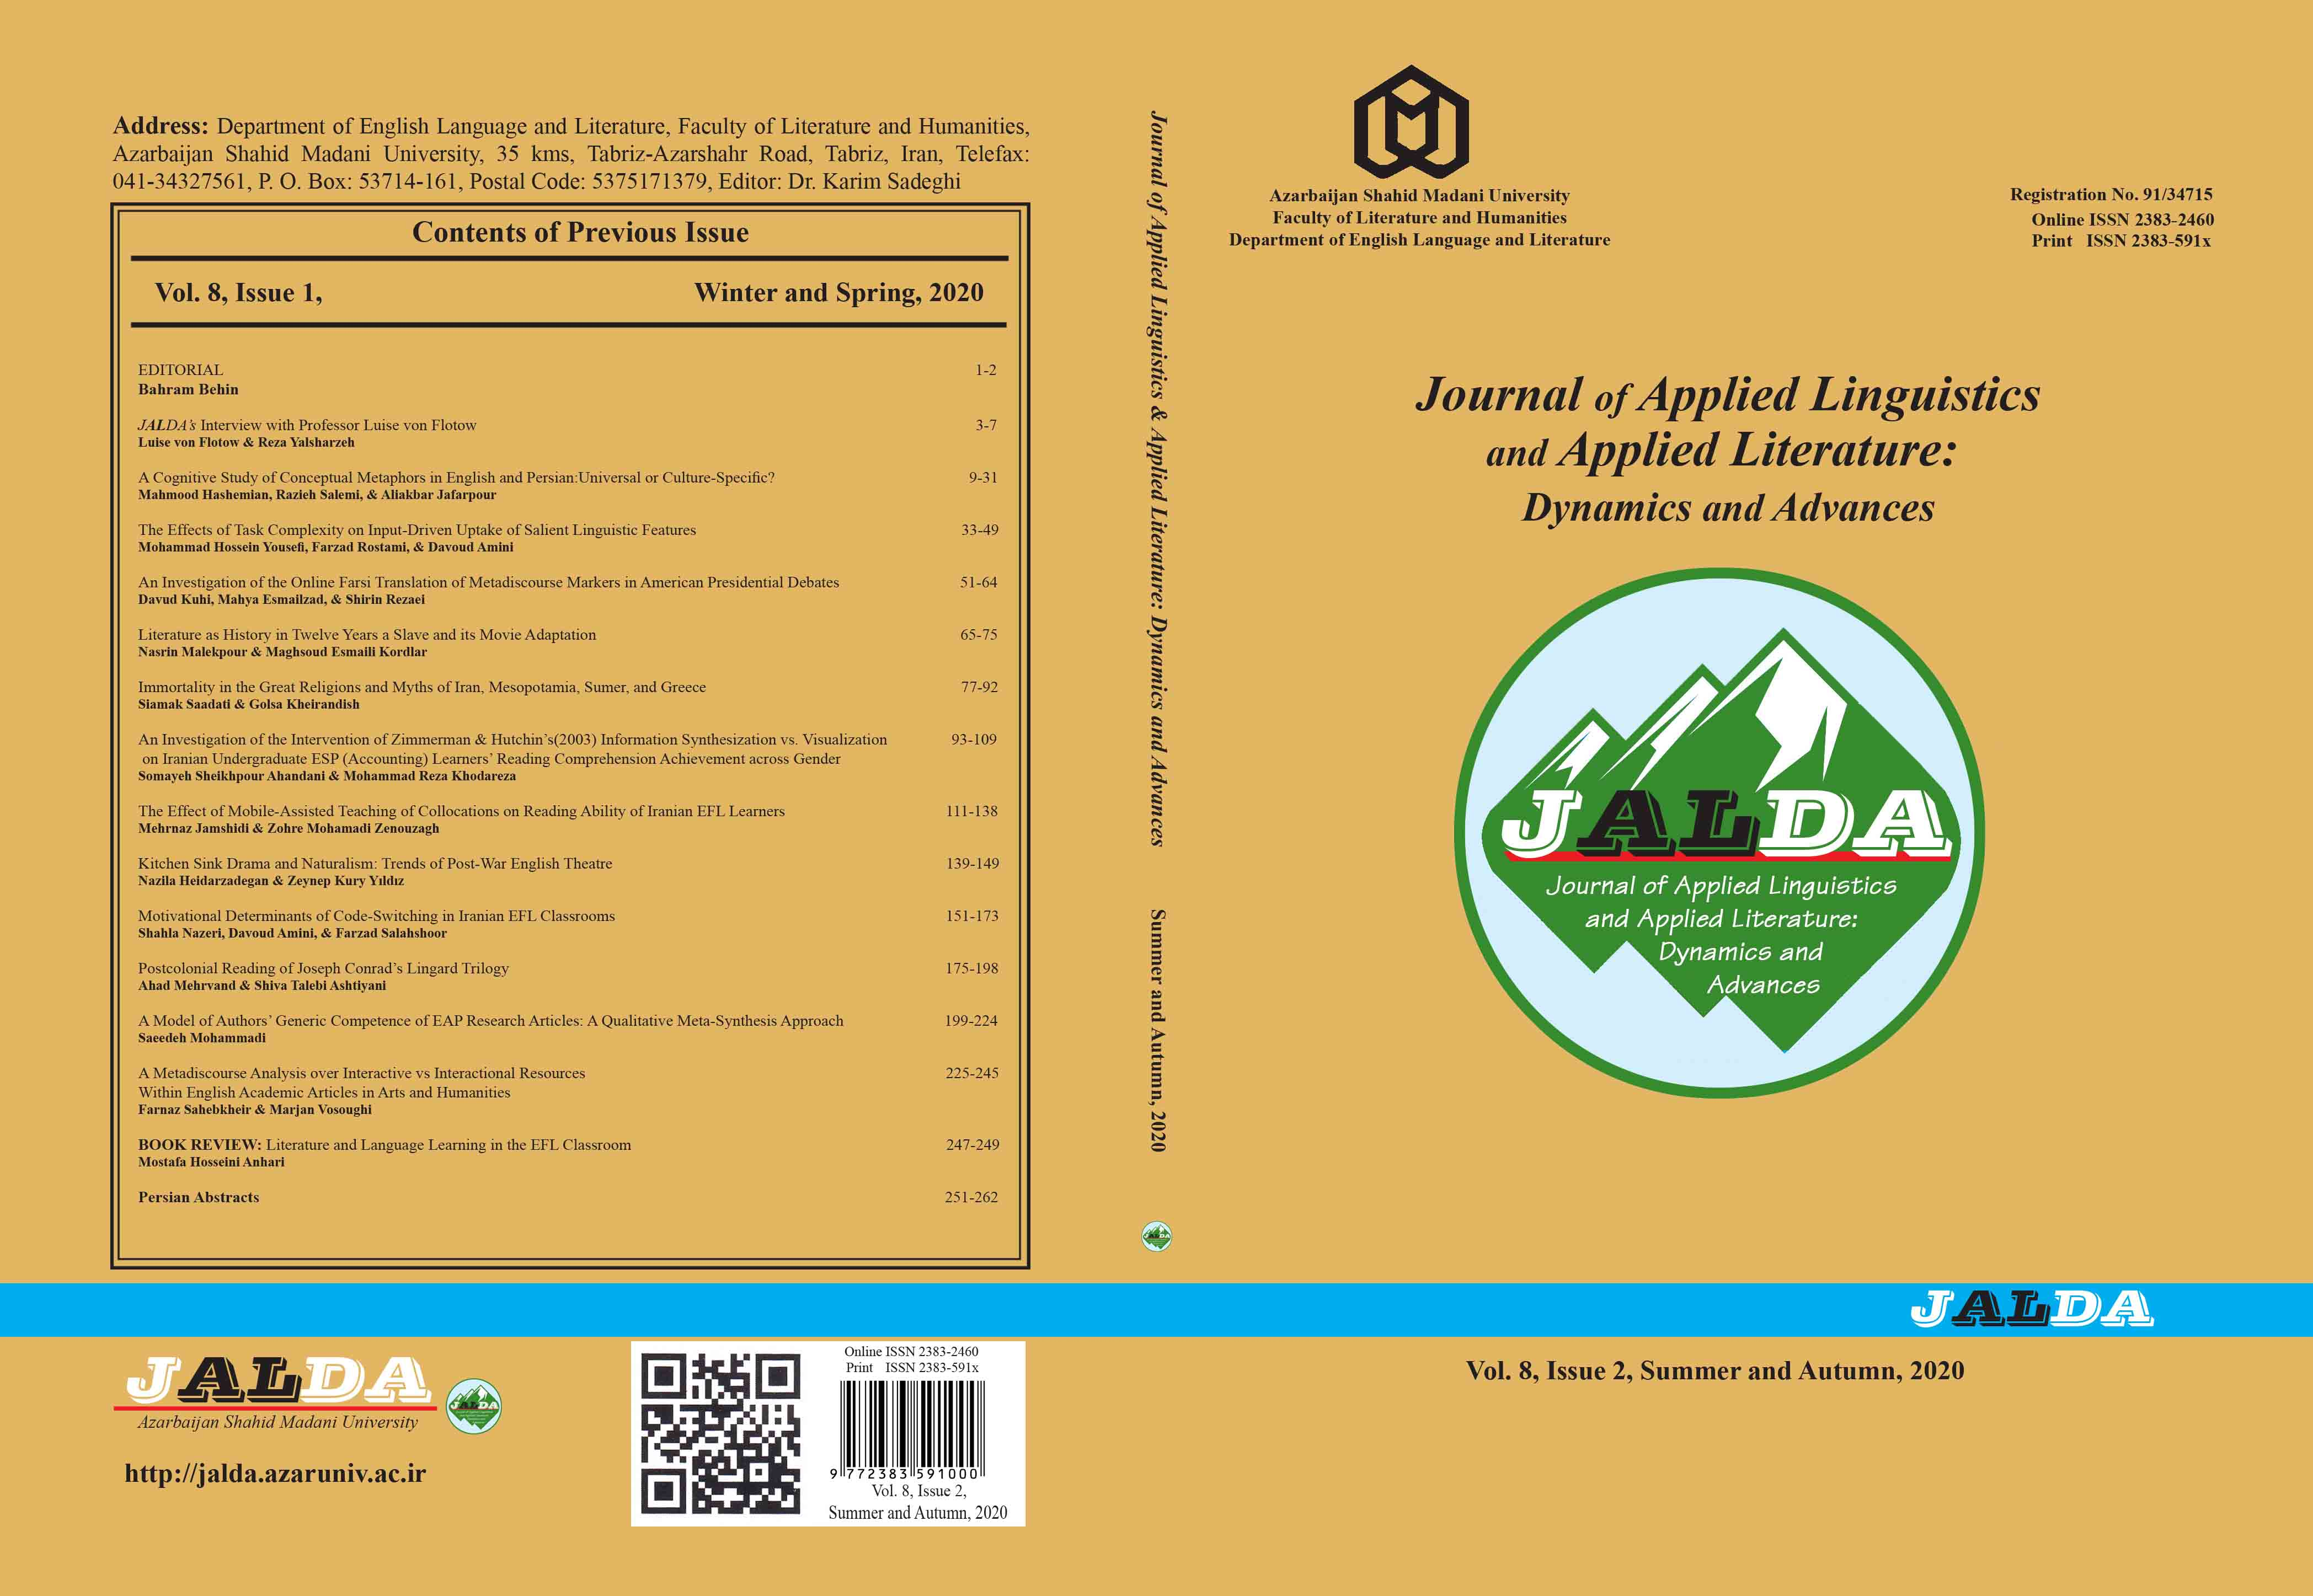 Journal of Applied Linguistics and Applied Literature: Dynamics and Advances